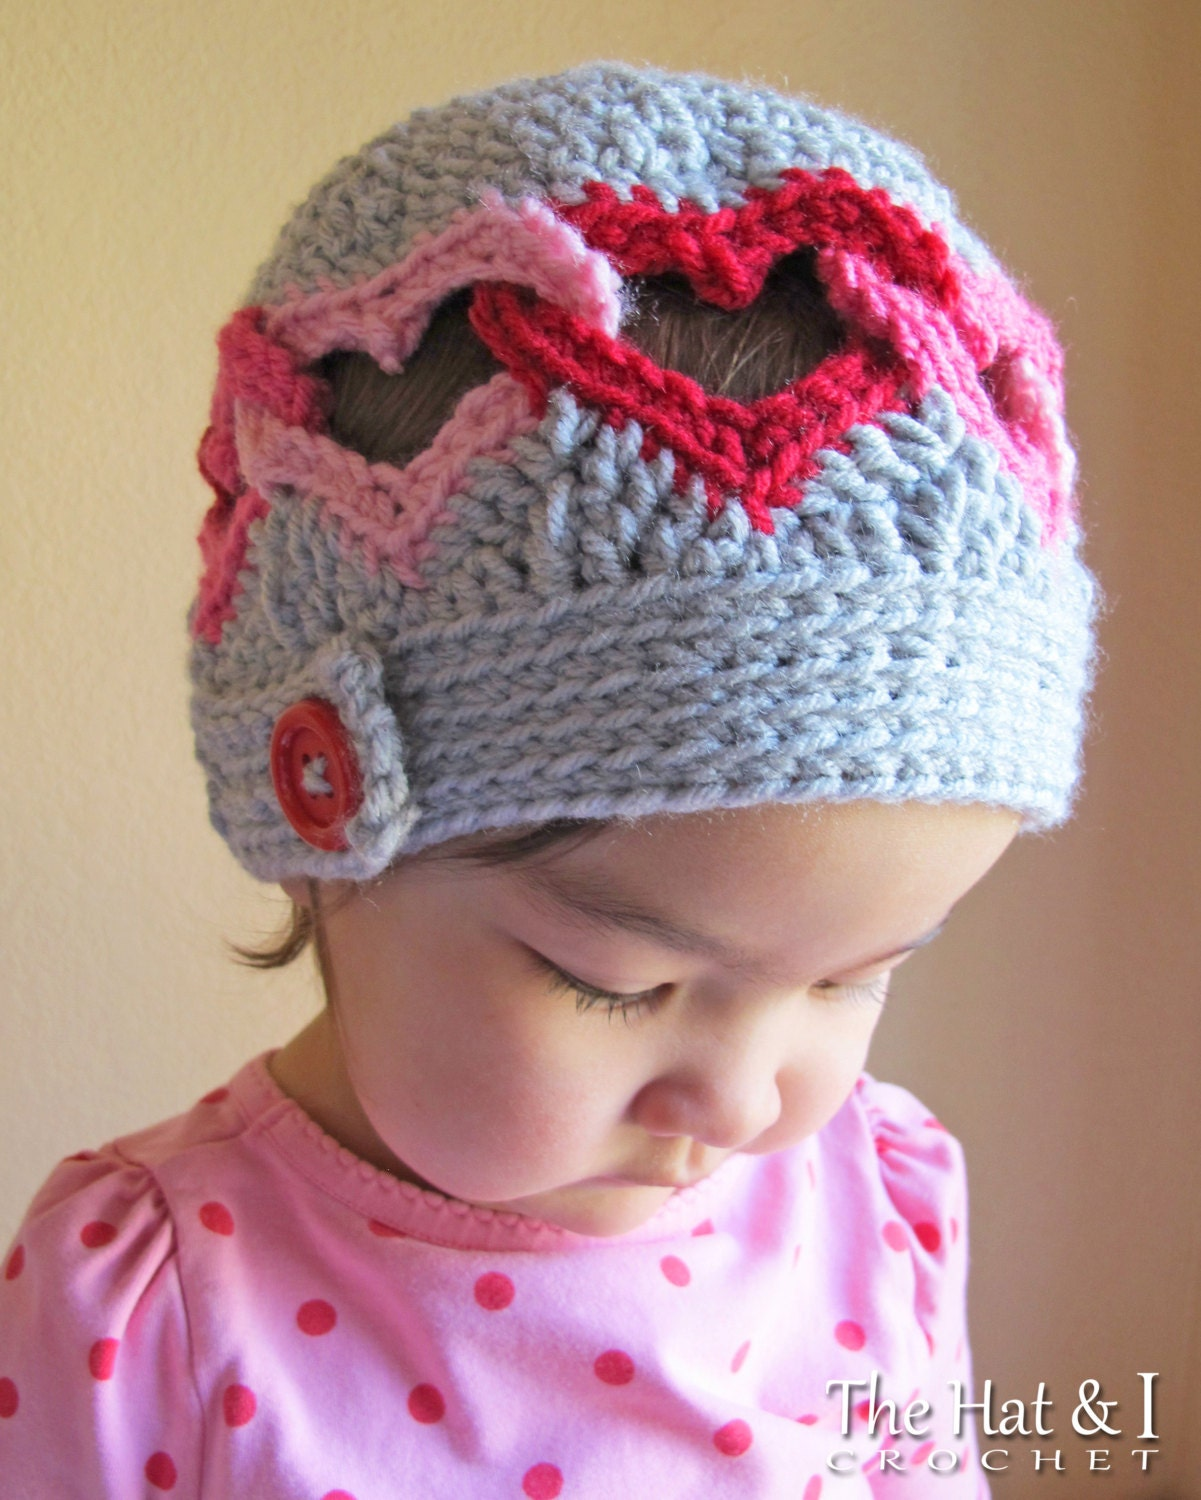 Crochet Pattern For Baby Hat And Scarf : CROCHET PATTERN Be Mine crochet heart hat pattern linked